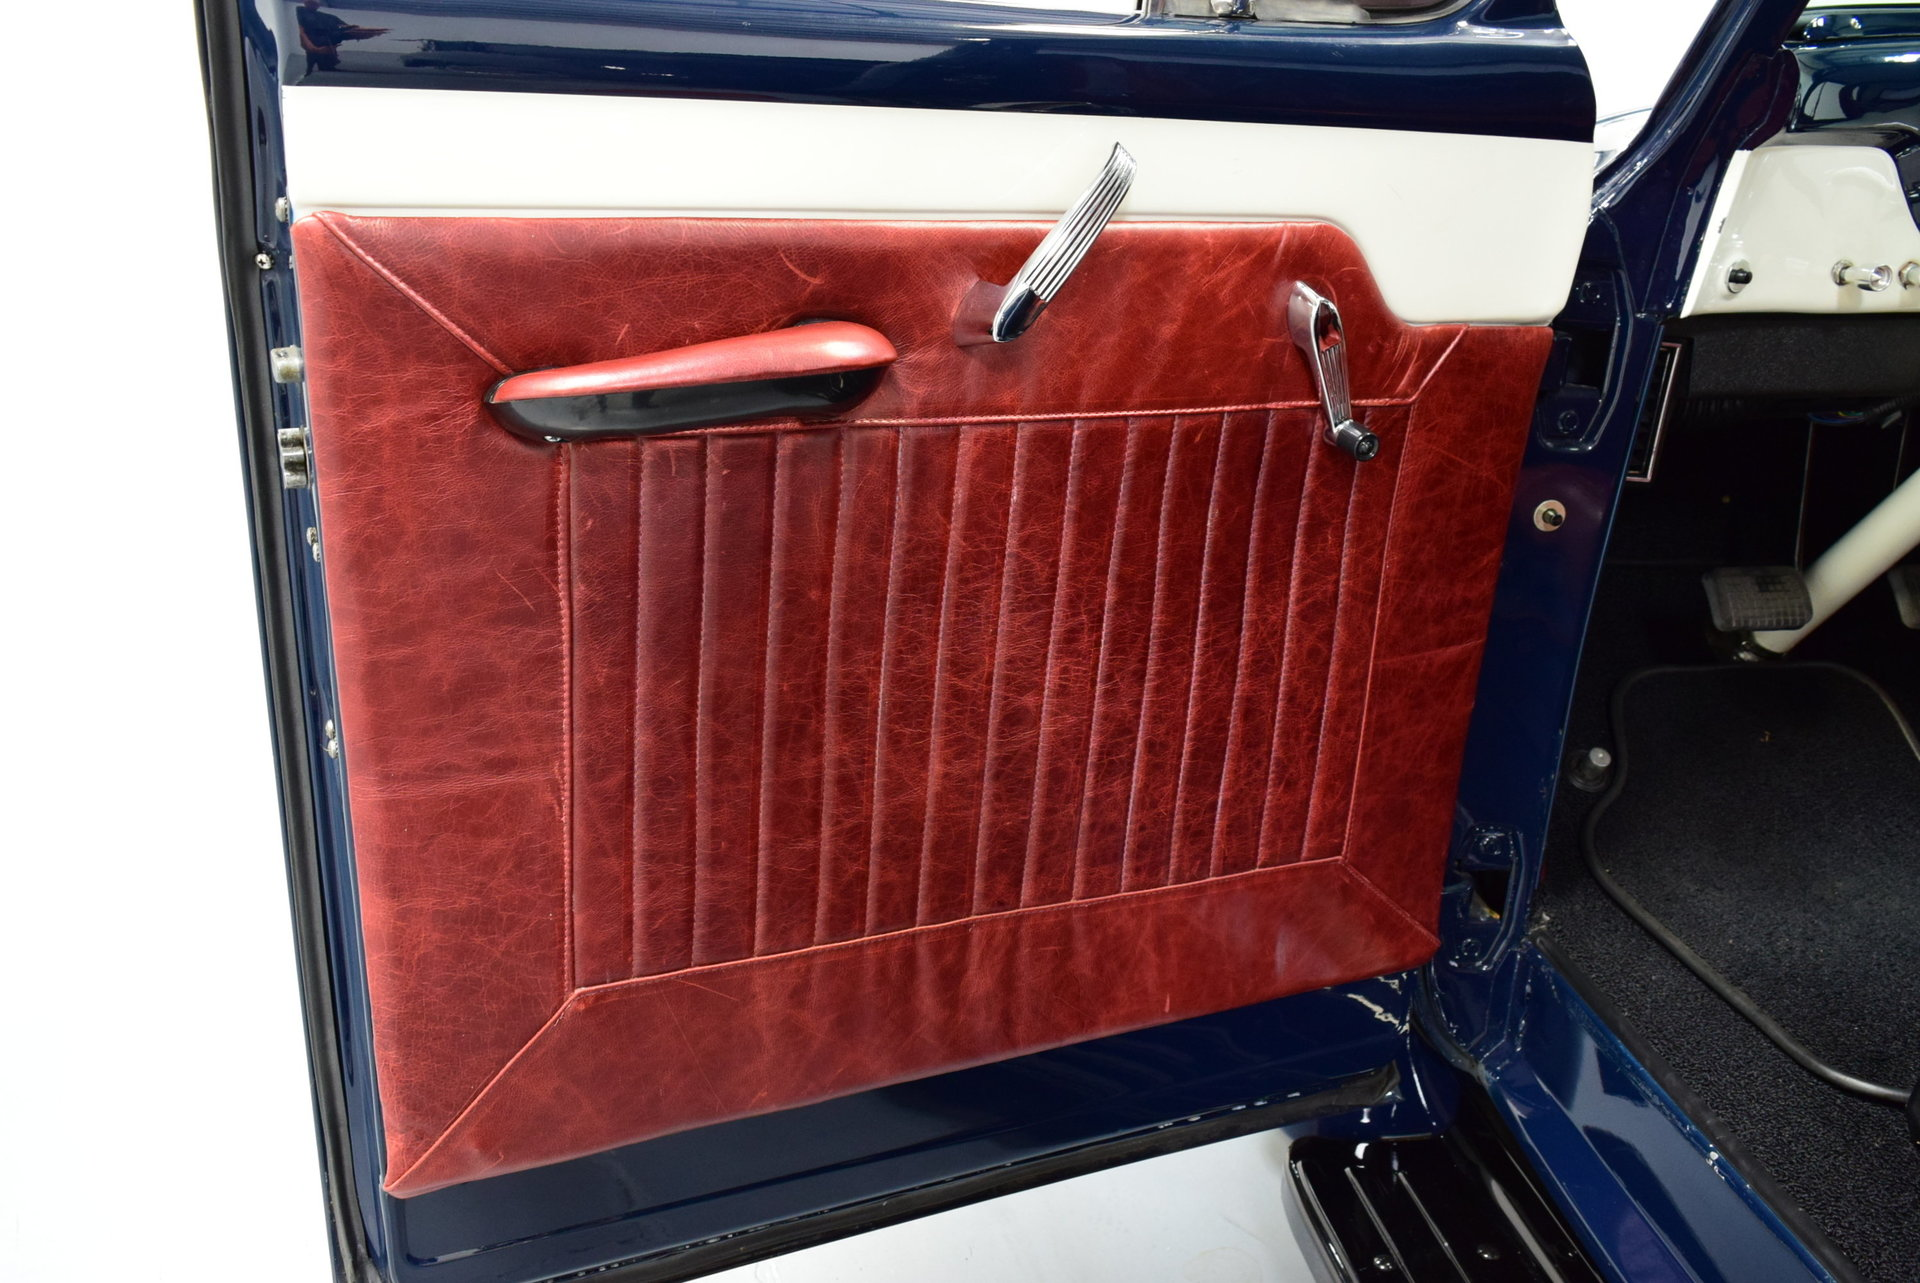 1955 Ford F100 Radiator Is Your Car Side View Source For Sale 91520 Mcg